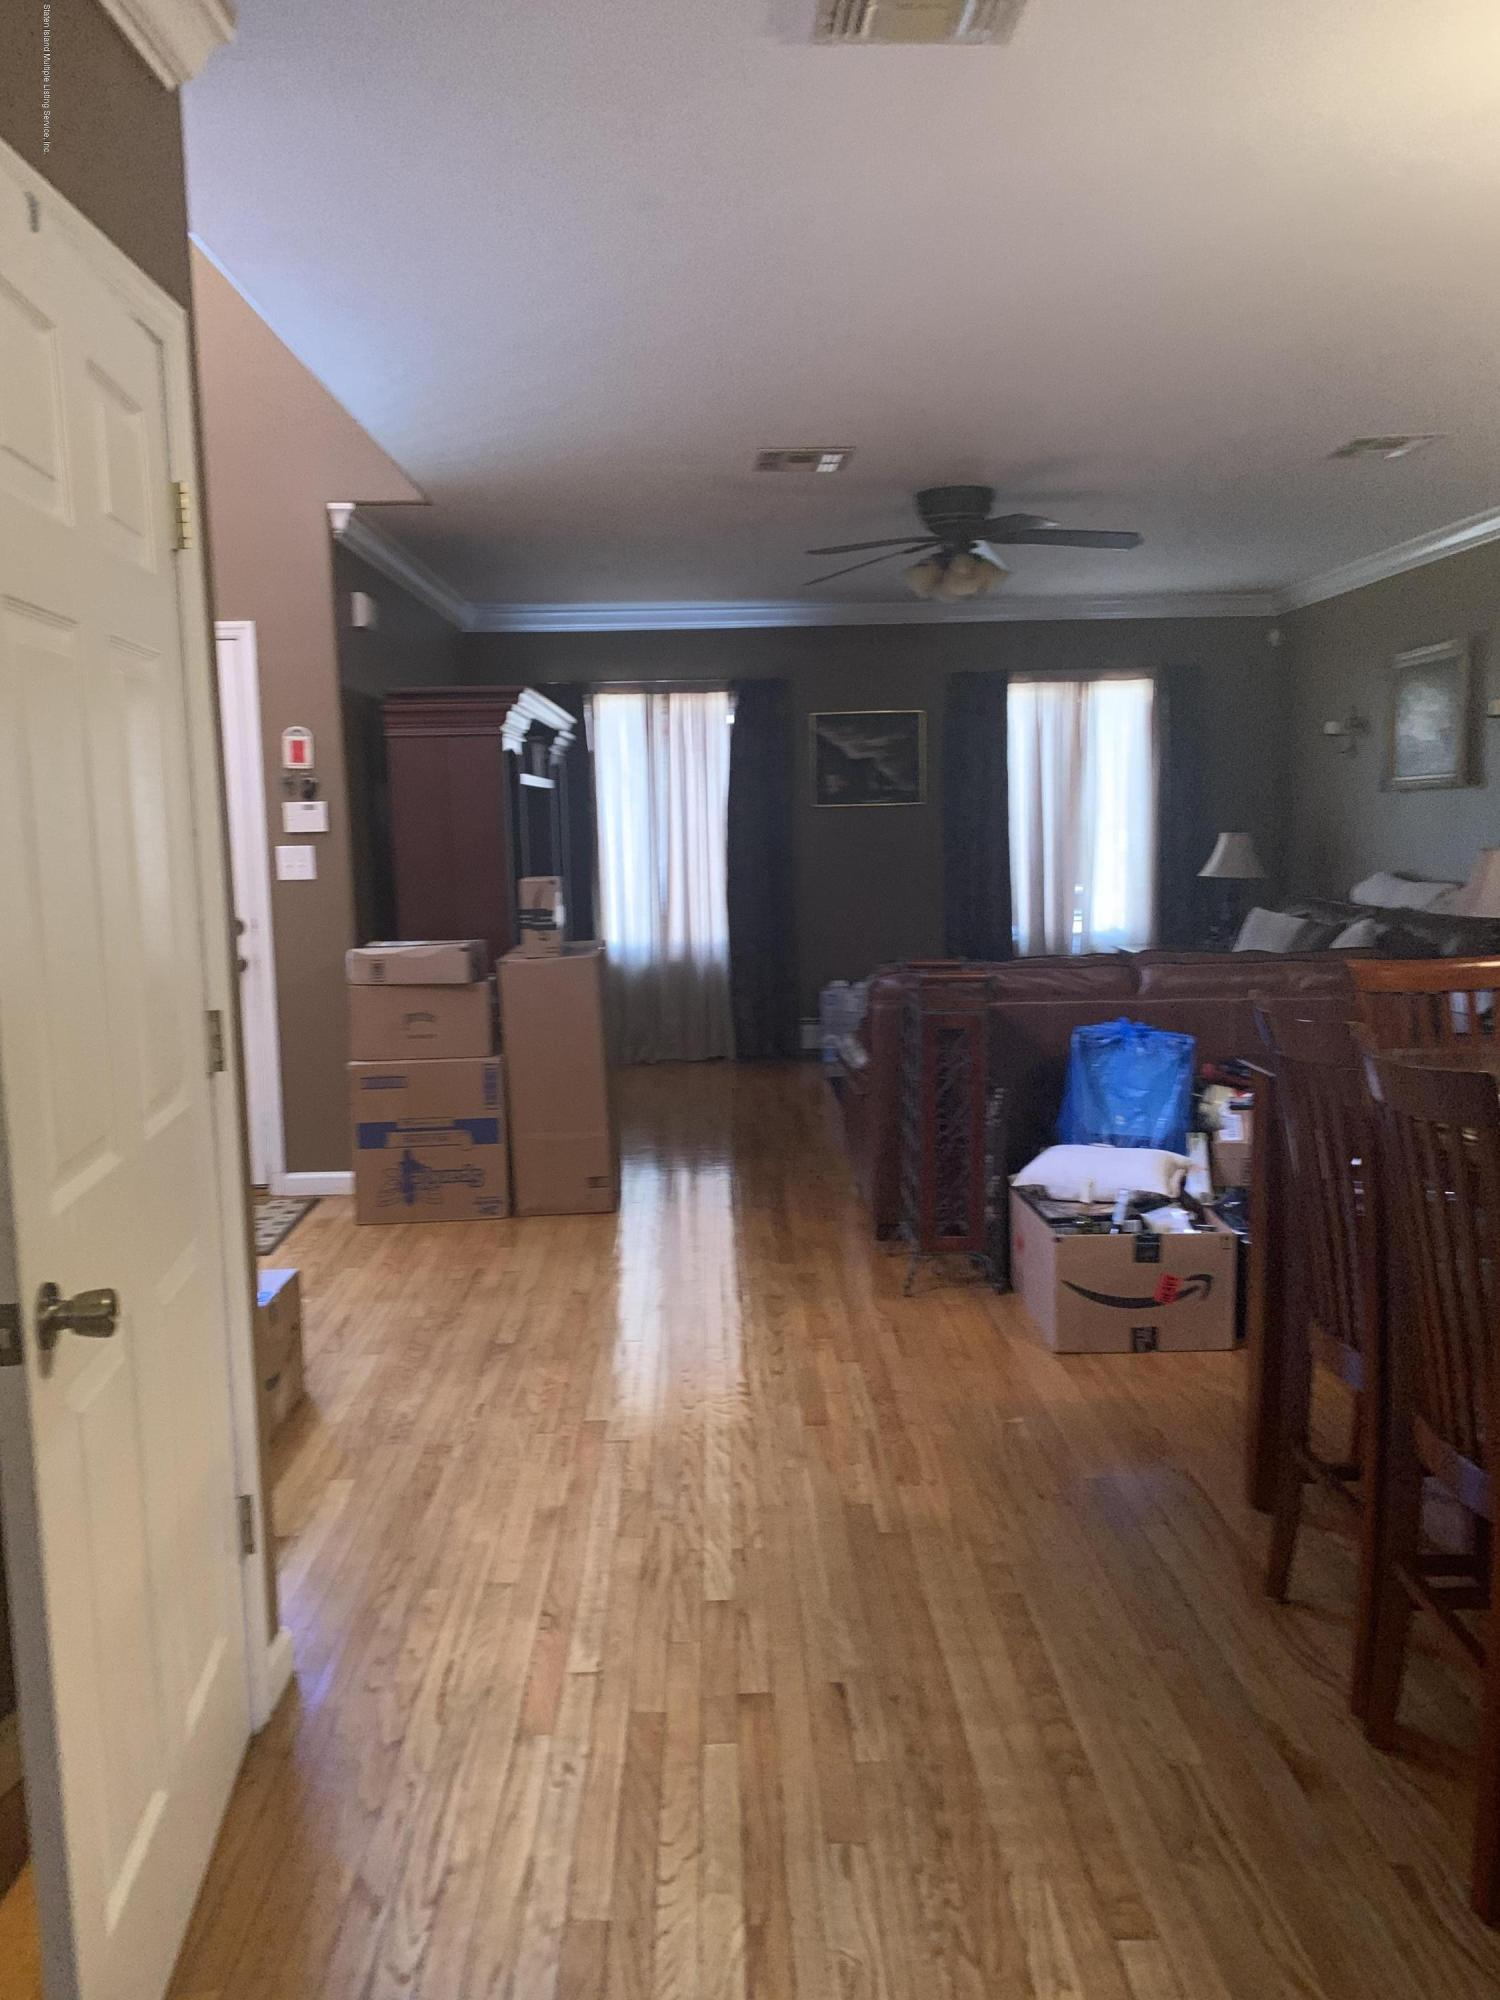 Single Family - Semi-Attached 29 Coco Court  Staten Island, NY 10312, MLS-1135689-9